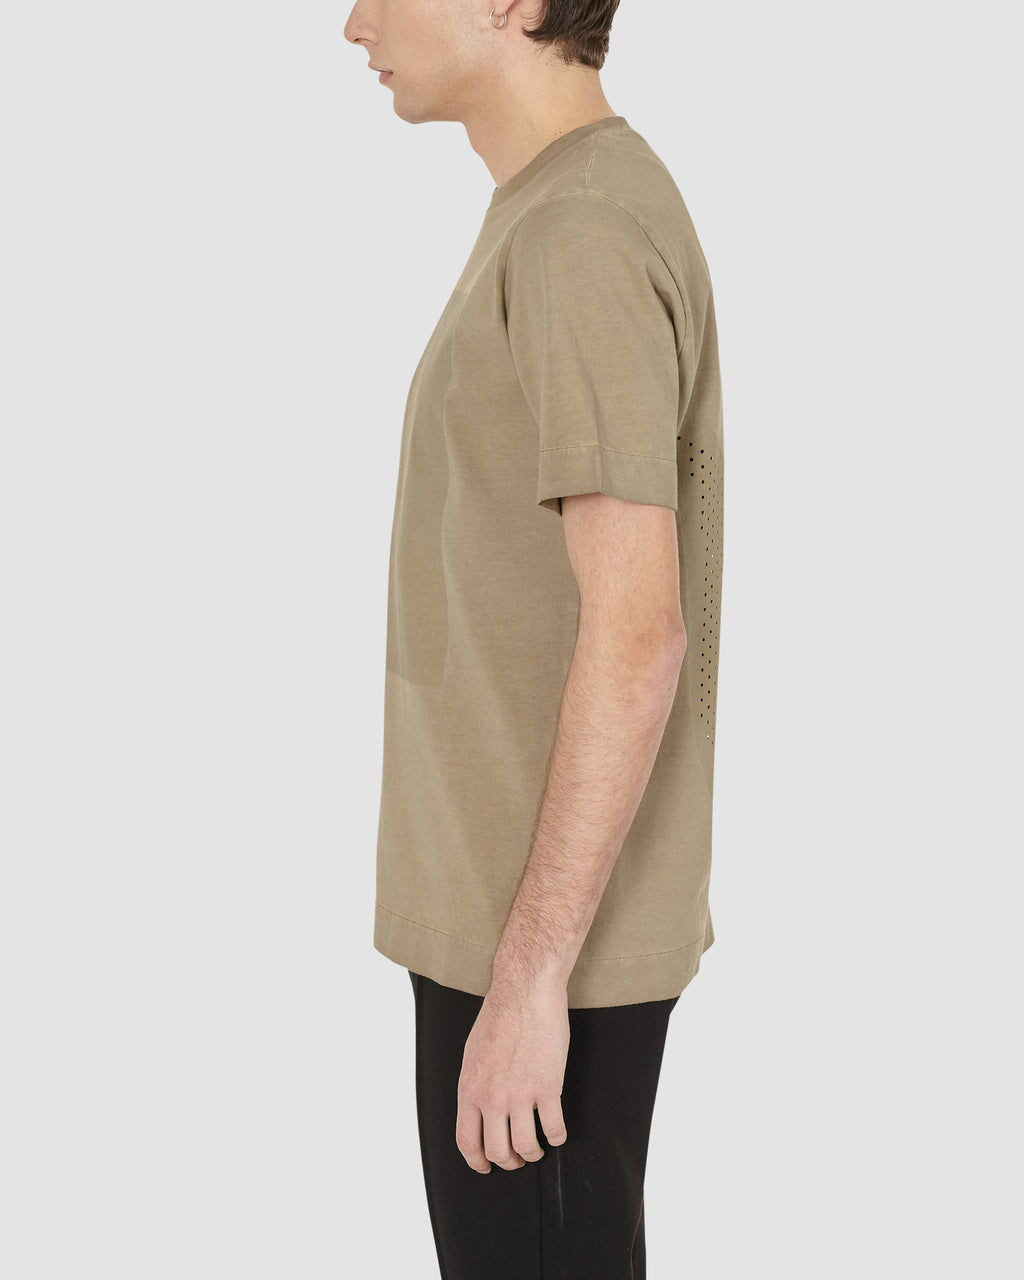 1017 ALYX 9SM | SS TEE | T-Shirt | DARK TAN, Google Shopping, Man, MEN, S20, S20EXSH, T-Shirts